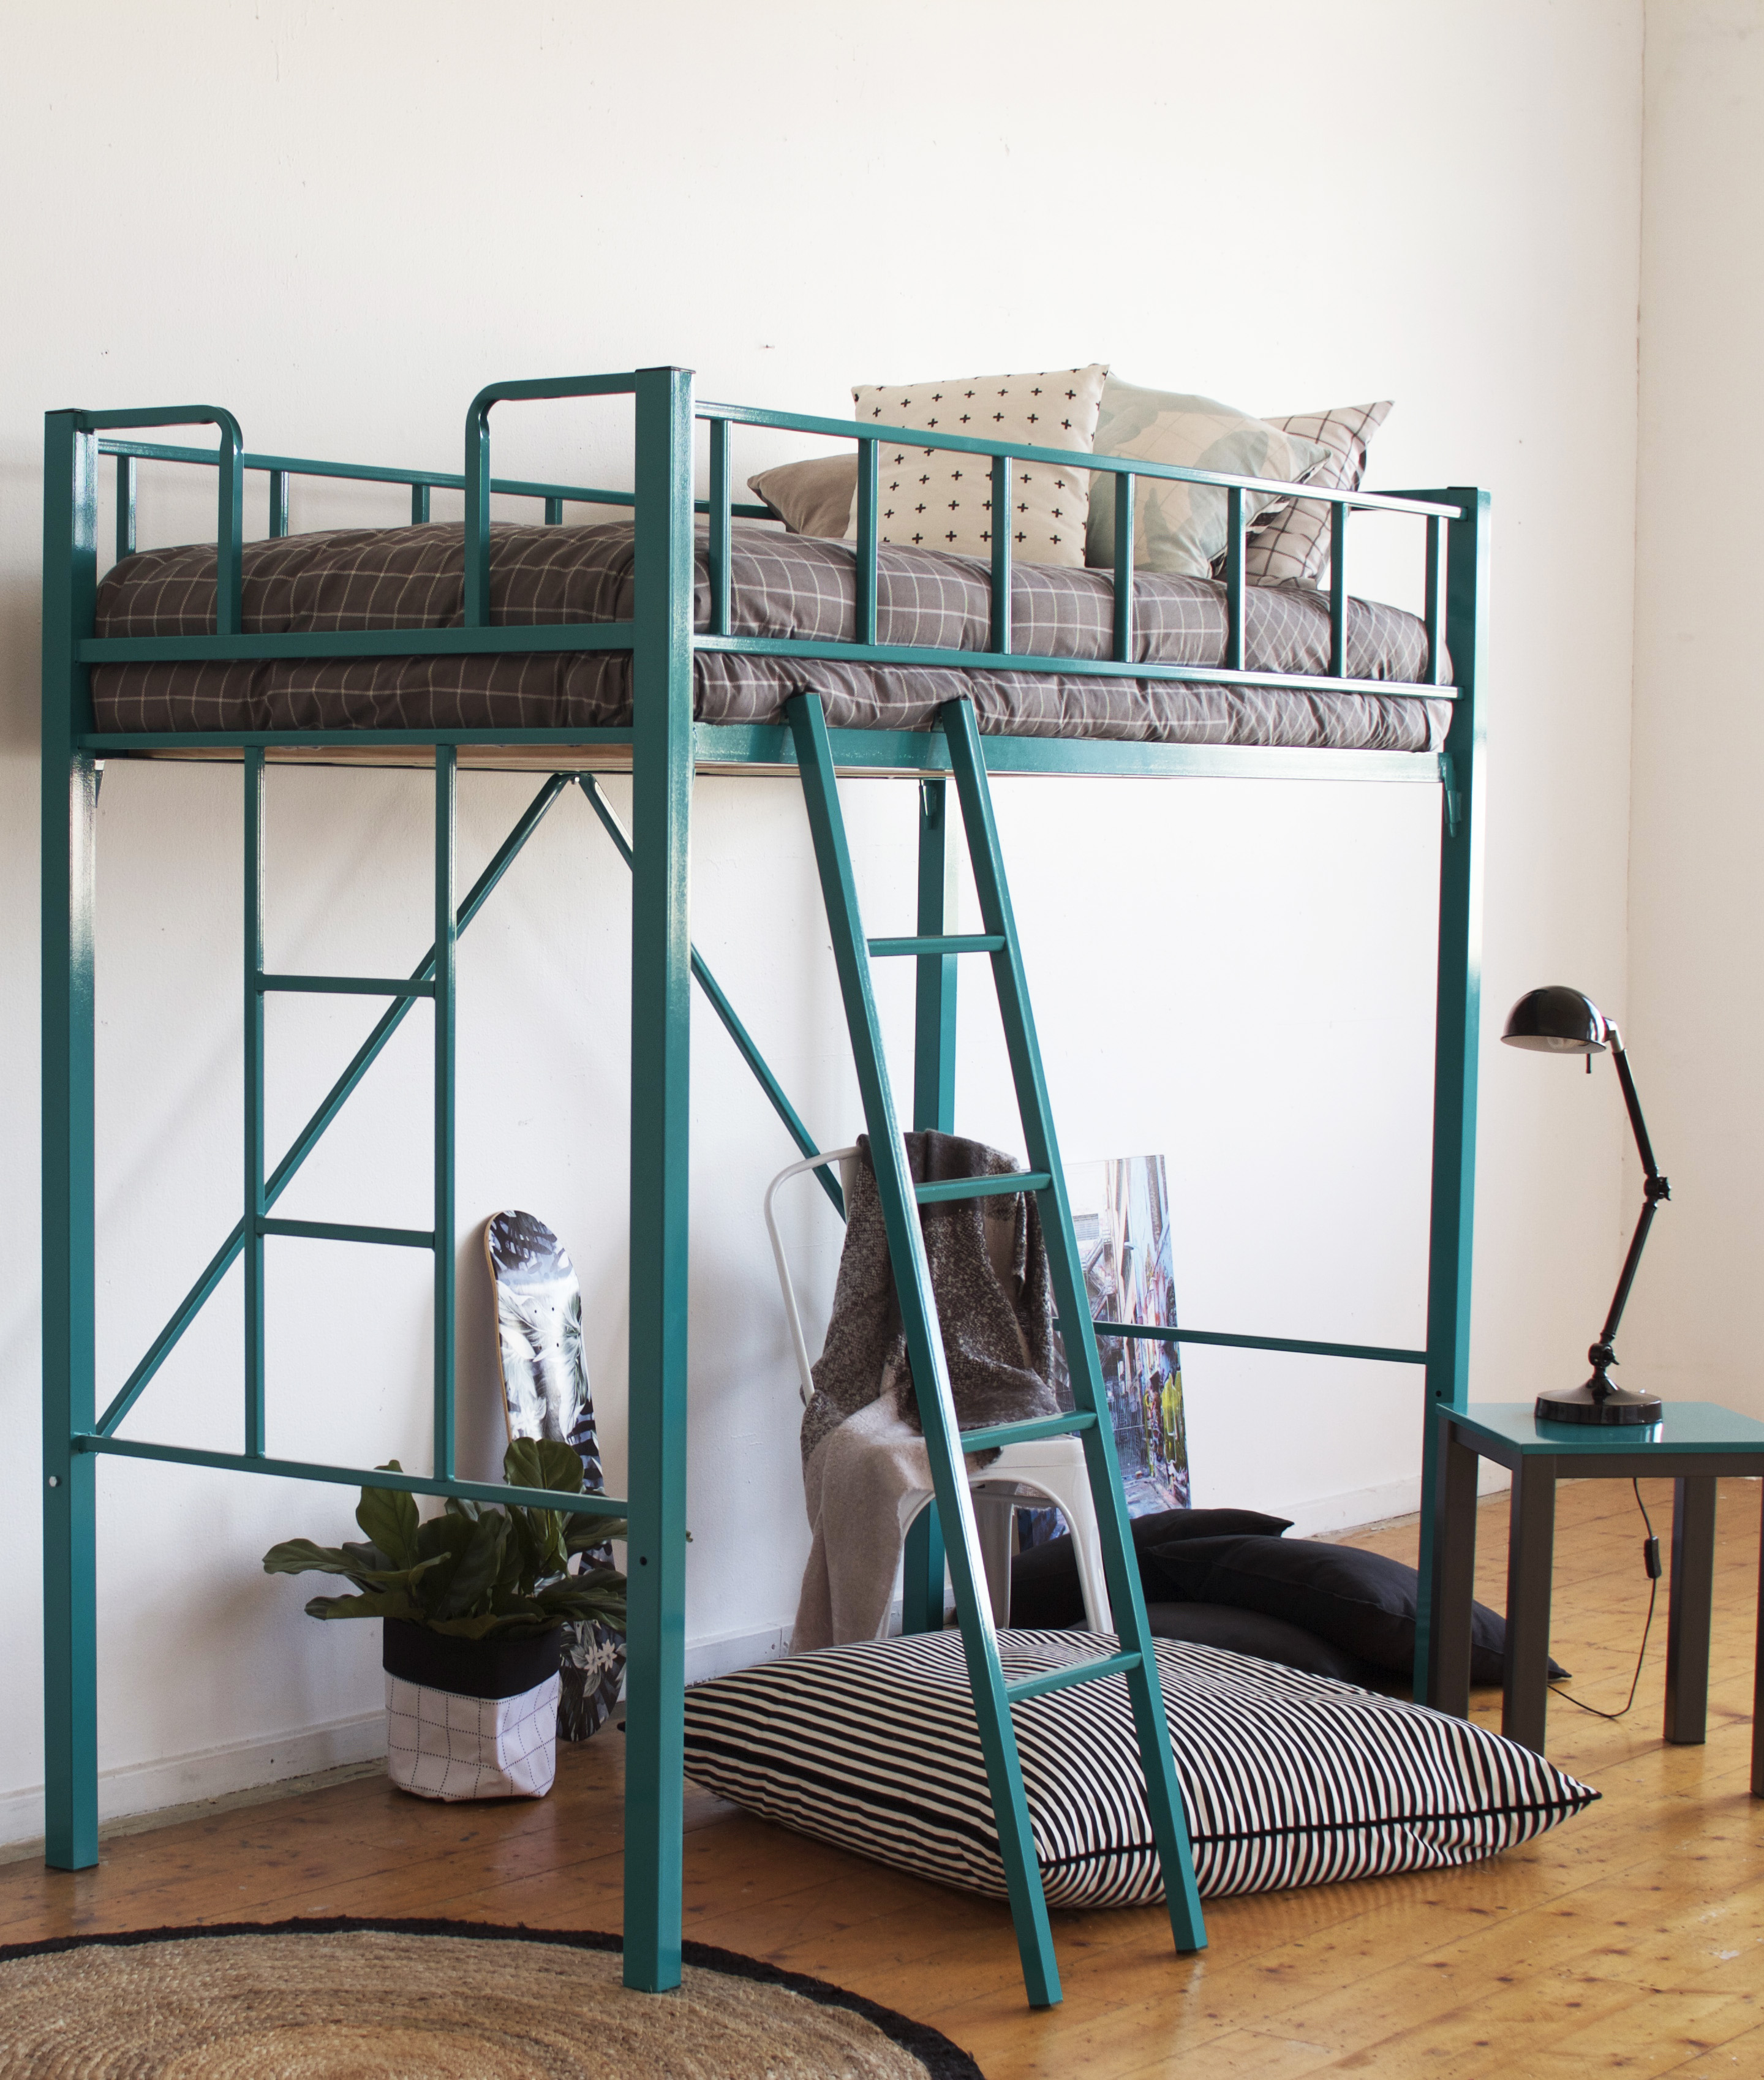 Bunk Beds The Australian Made Campaign